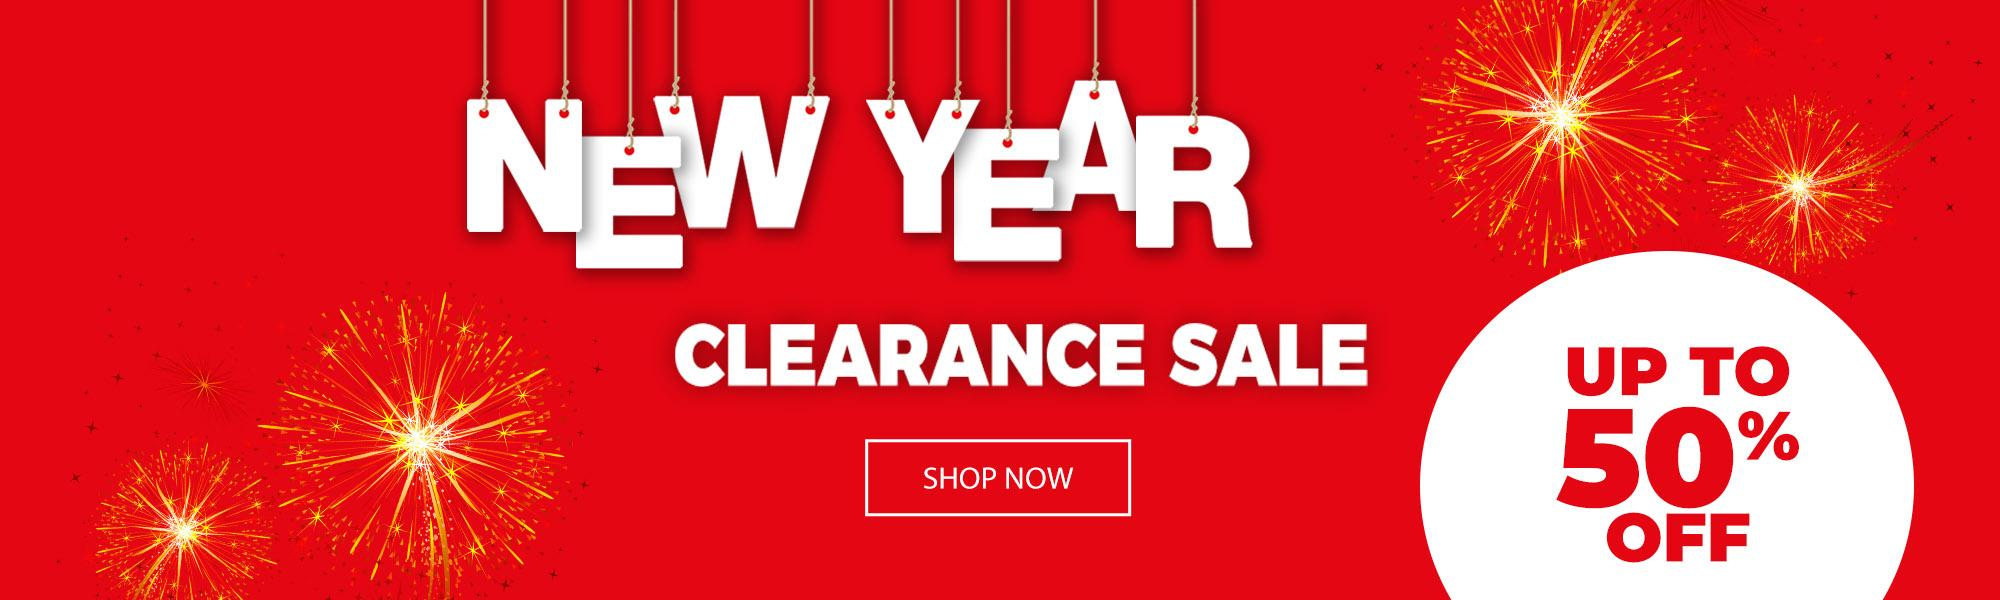 New year clearance sale up to 50% off